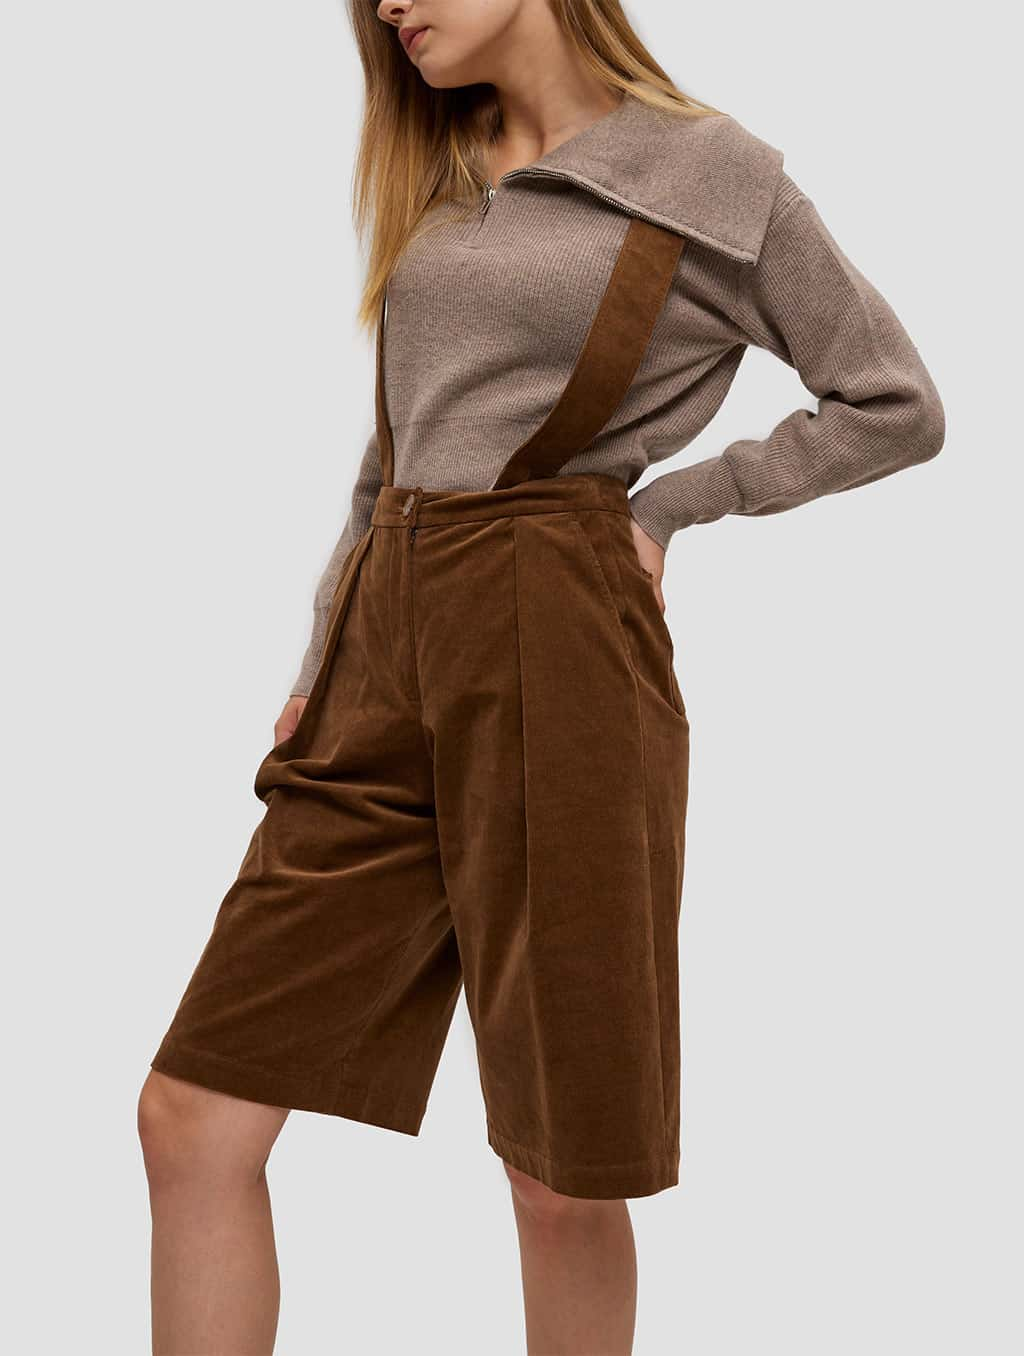 Overall Shorts - side- brown